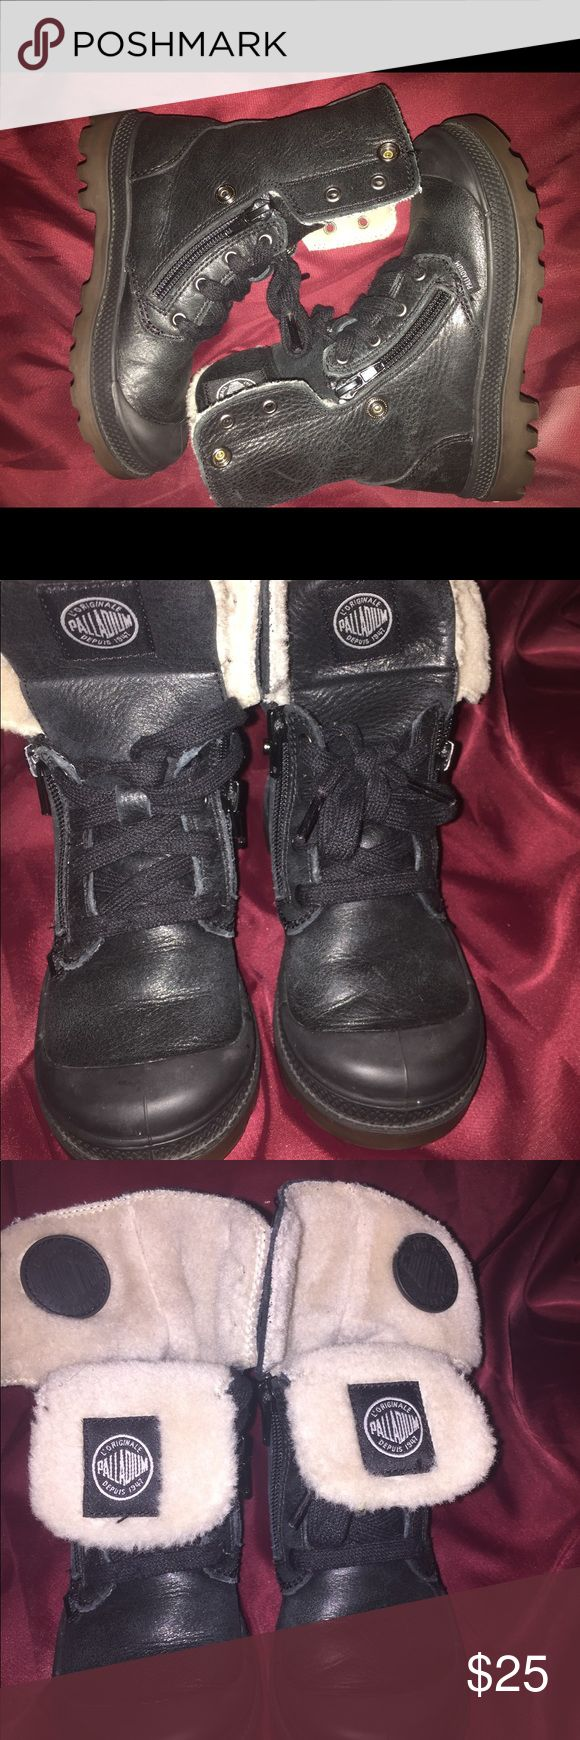 Palladium boy/girl fleece lined sneaker boots. Palladium boy/girl fleece lined sneaker boots. Can be worn as combat boots or ankle boors. These boots were great for winter. Tried getting them again this year but they no longer have them. Gently used no damages, pet free/smoke free home. Palladium Shoes Boots